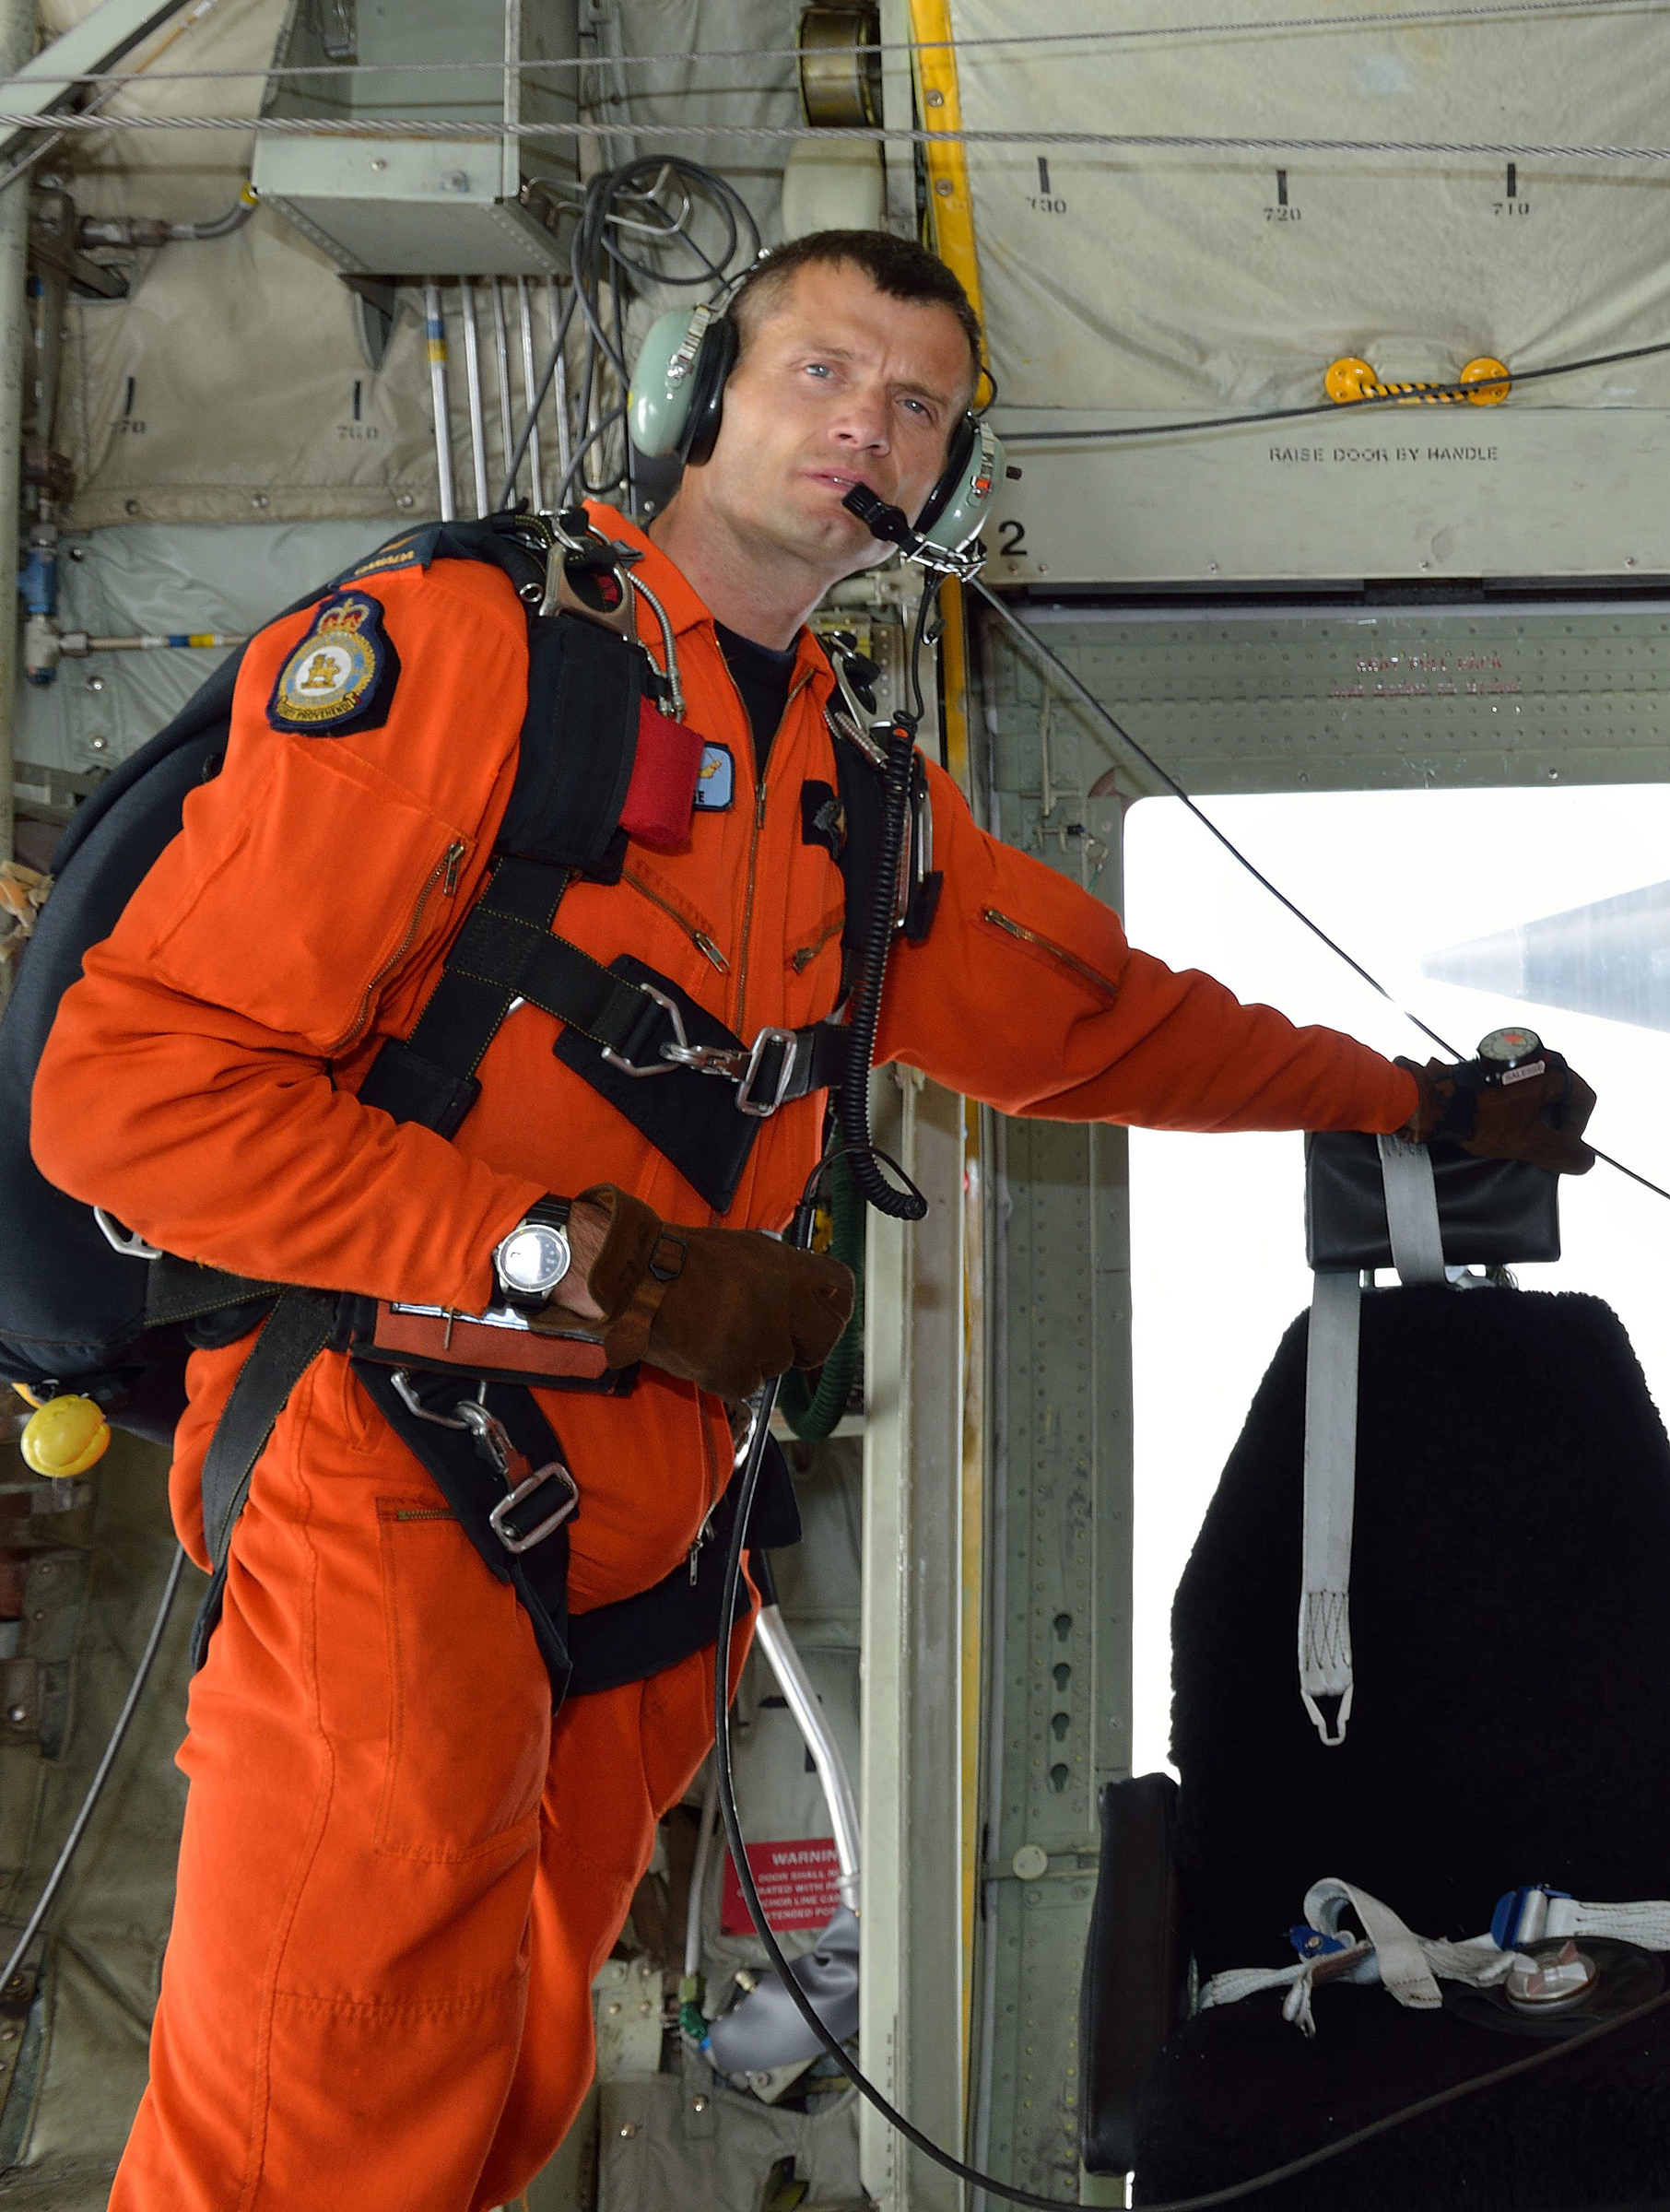 Sergeant Mark Salesse, an experienced search and rescue technician from 17 Wing Winnipeg, Manitoba, was missing after an incident in a training exercise in Banff National Park, Alberta, on Thursday, February 5, 2015.  His remains were recovered on Wednesday, February 11, 2015. PHOTO: Sergeant Bill McLeod